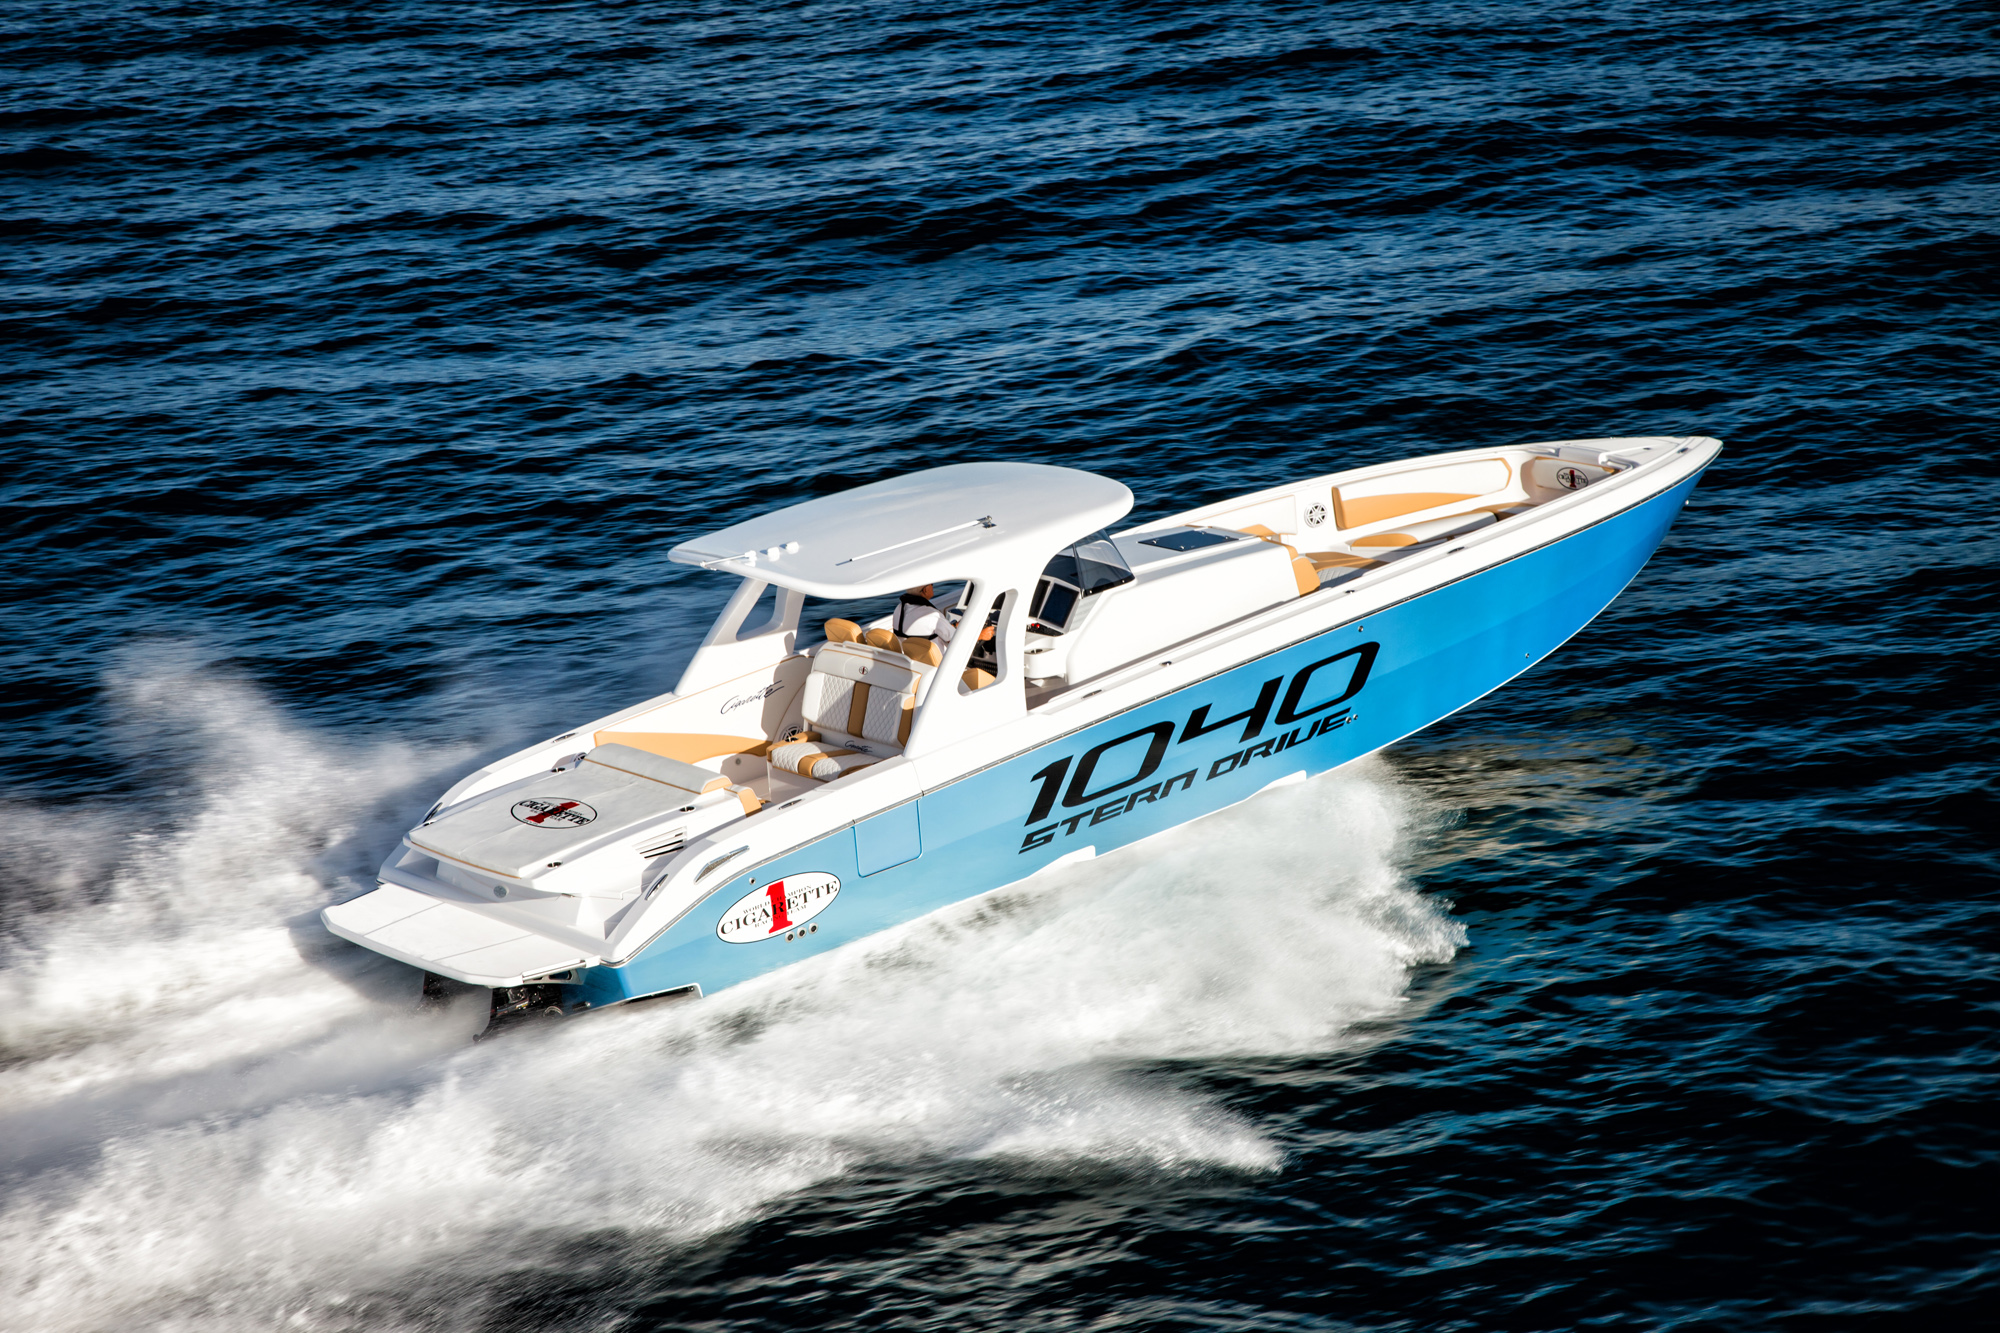 """Braver on the 41' 1040 Stern Drive: """"We started with a completely clean sheet of paper. It was an entirely new concept in boating.'"""